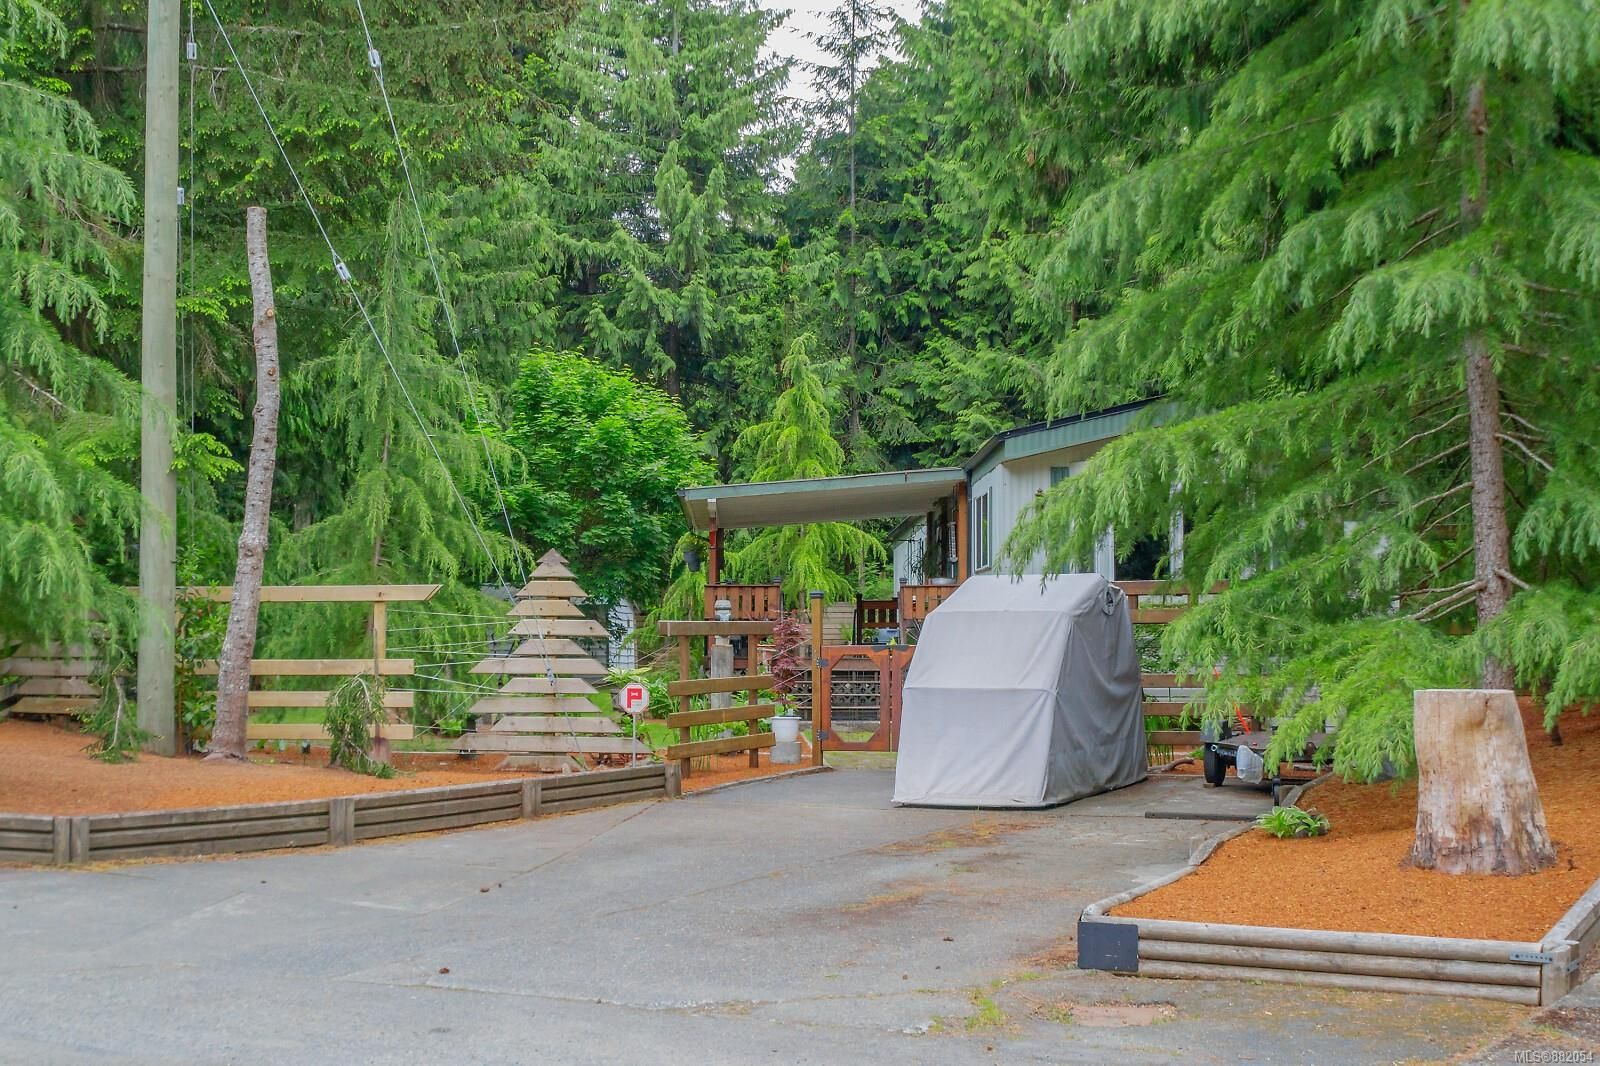 Main Photo: C24 920 Whittaker Rd in : ML Malahat Proper Manufactured Home for sale (Malahat & Area)  : MLS®# 882054